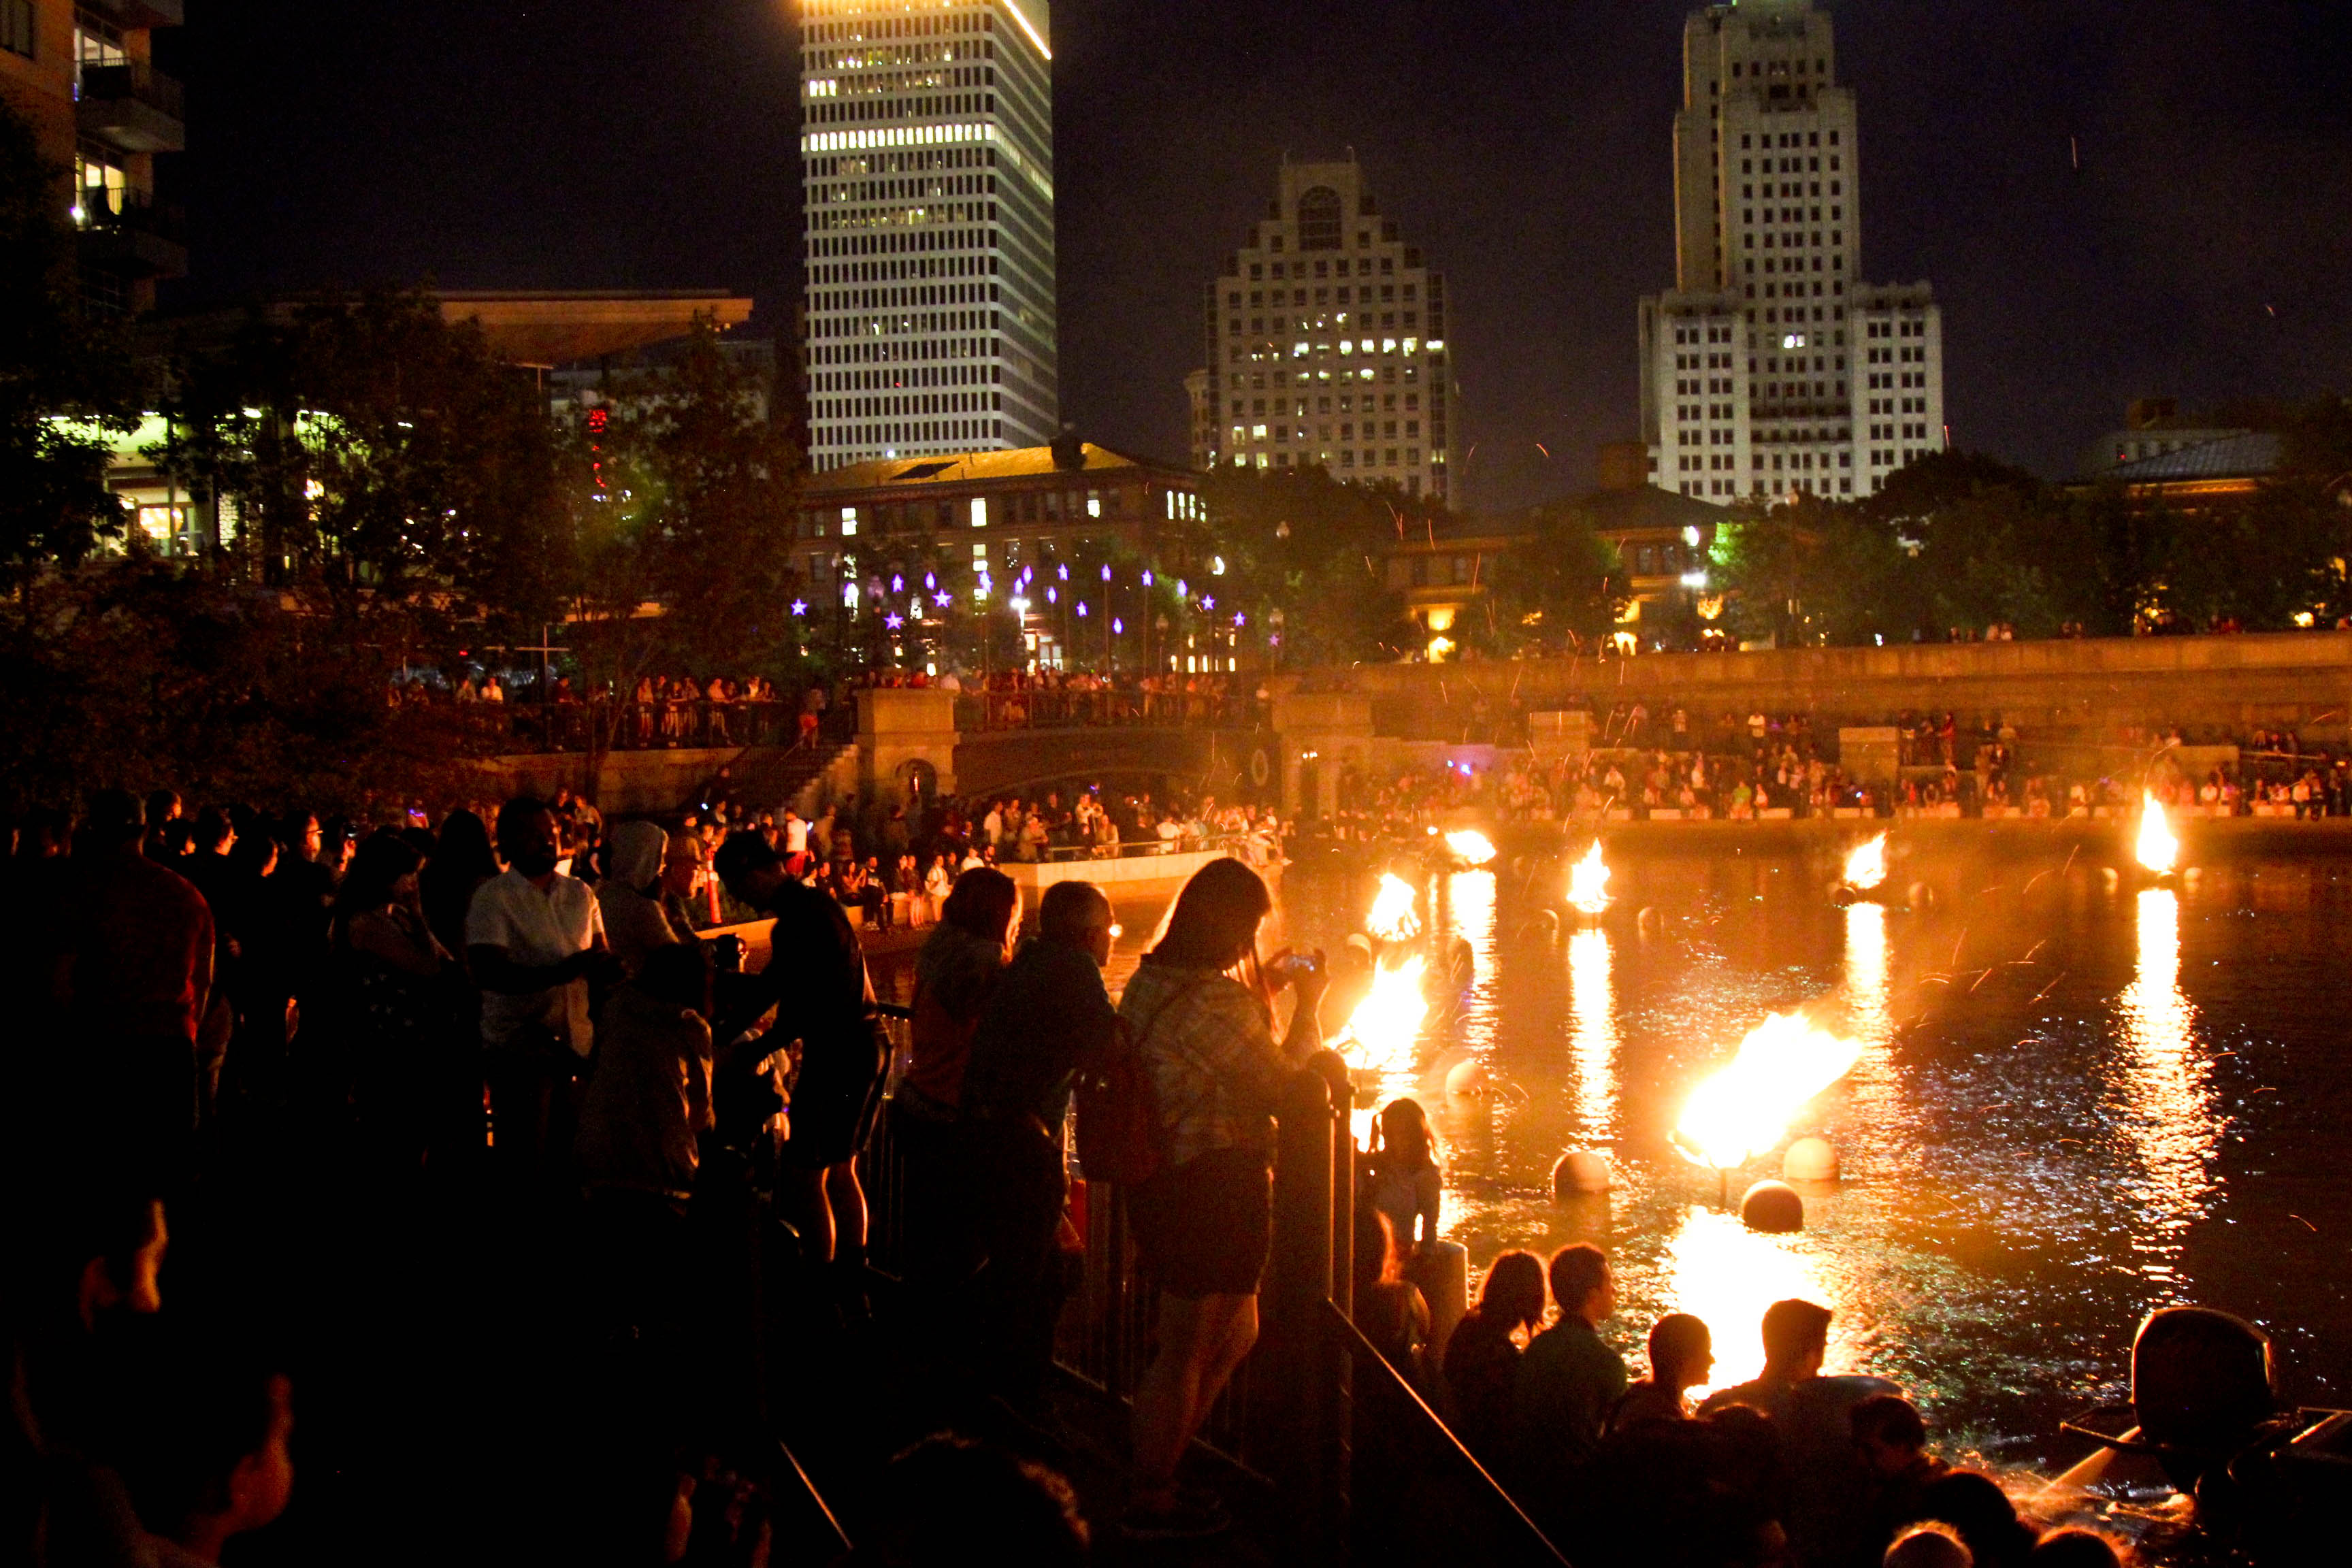 Waterfire through the eyes of the spectator, photograph by Amy Lavigne